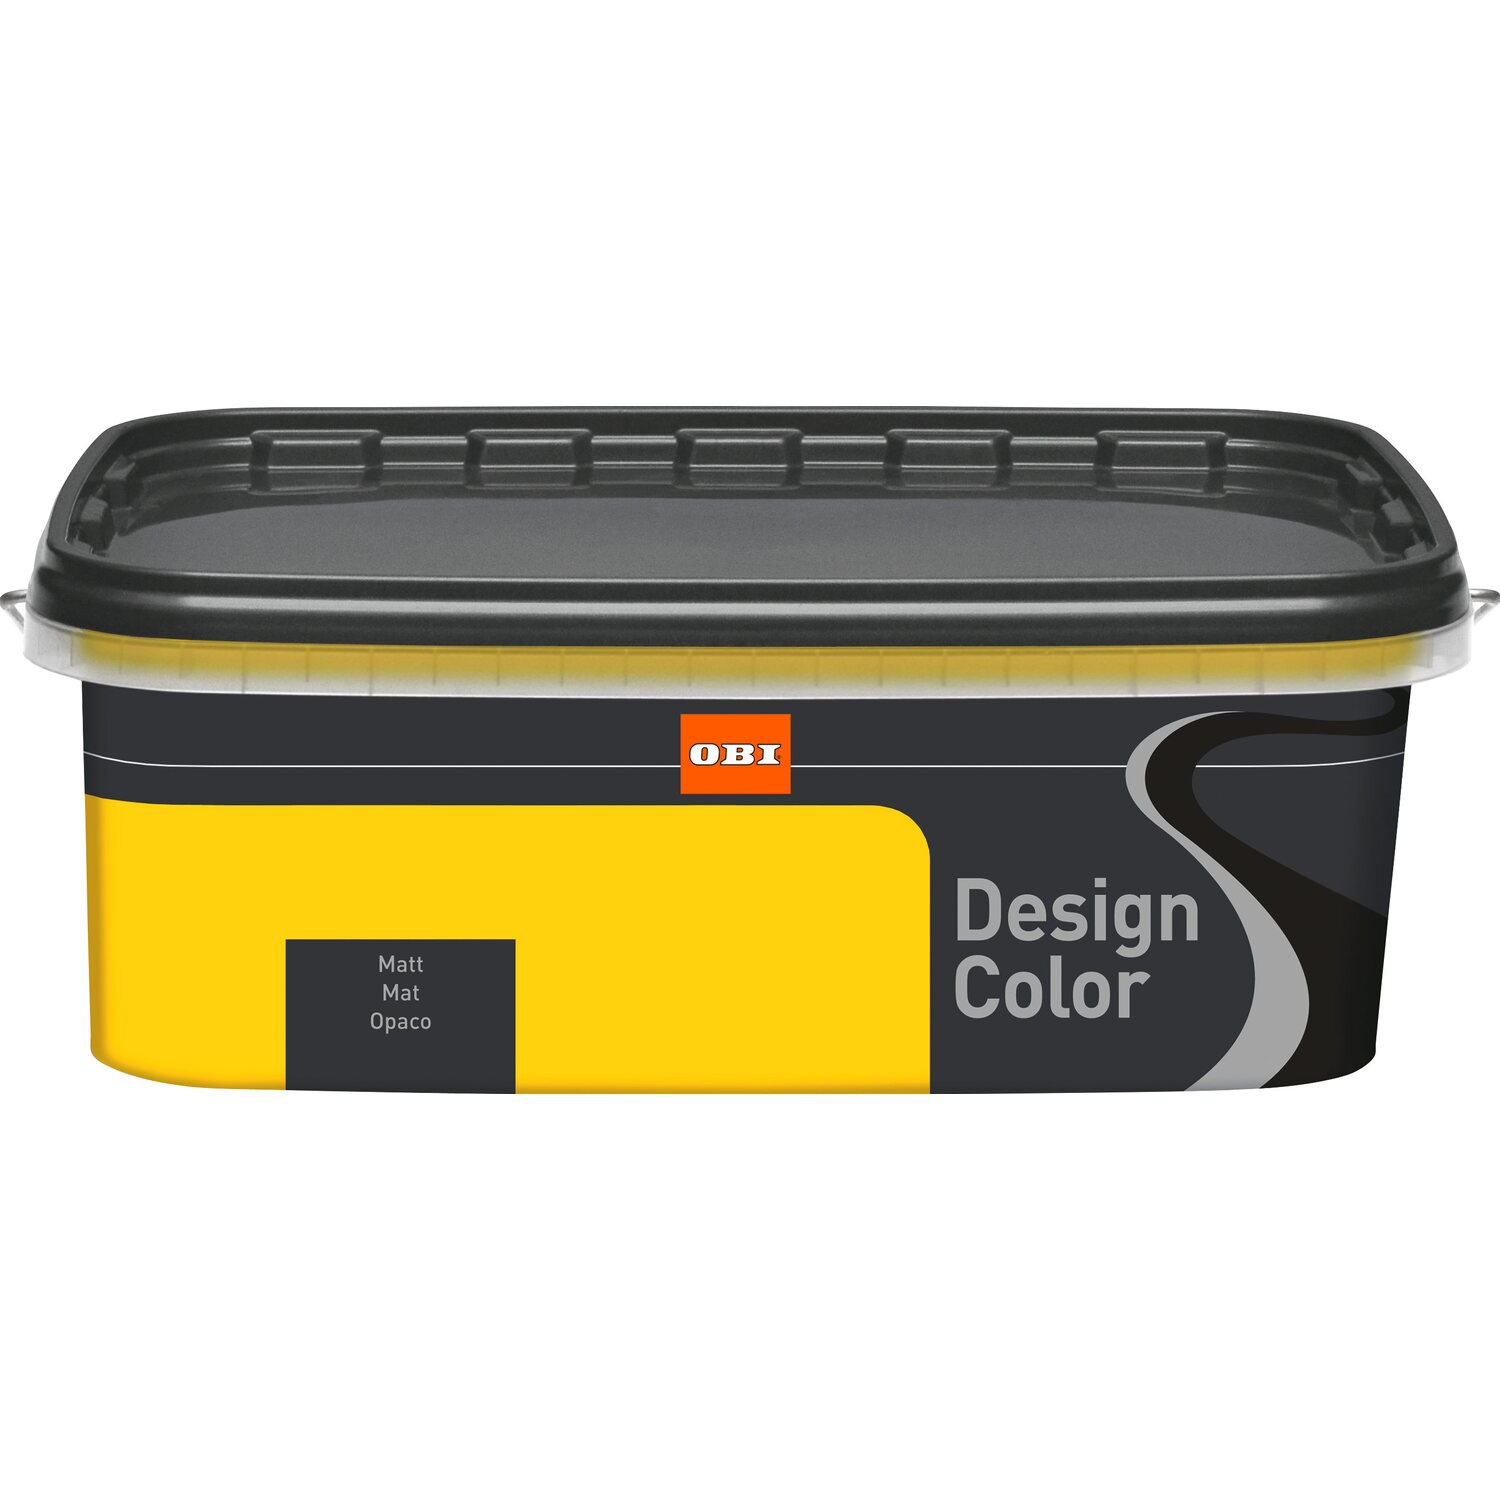 OBI Design Color Sunshine Matt 2,5 L Acquista Da OBI